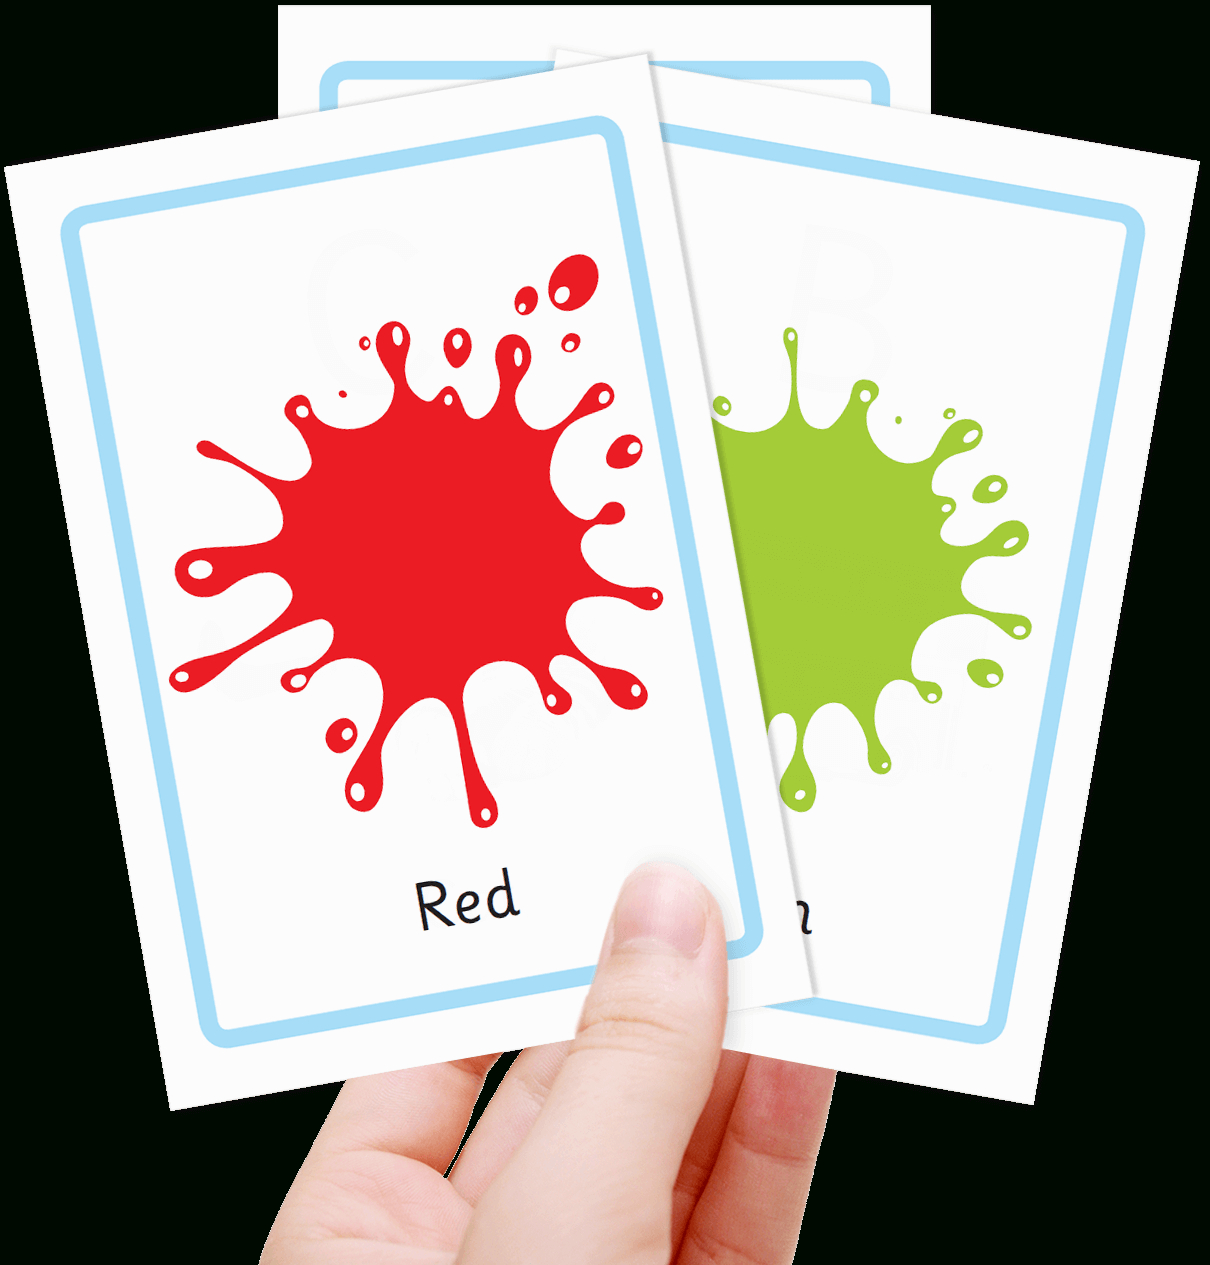 Free Colour Flashcards For Kids - Totcards - Free Printable Colour Flashcards